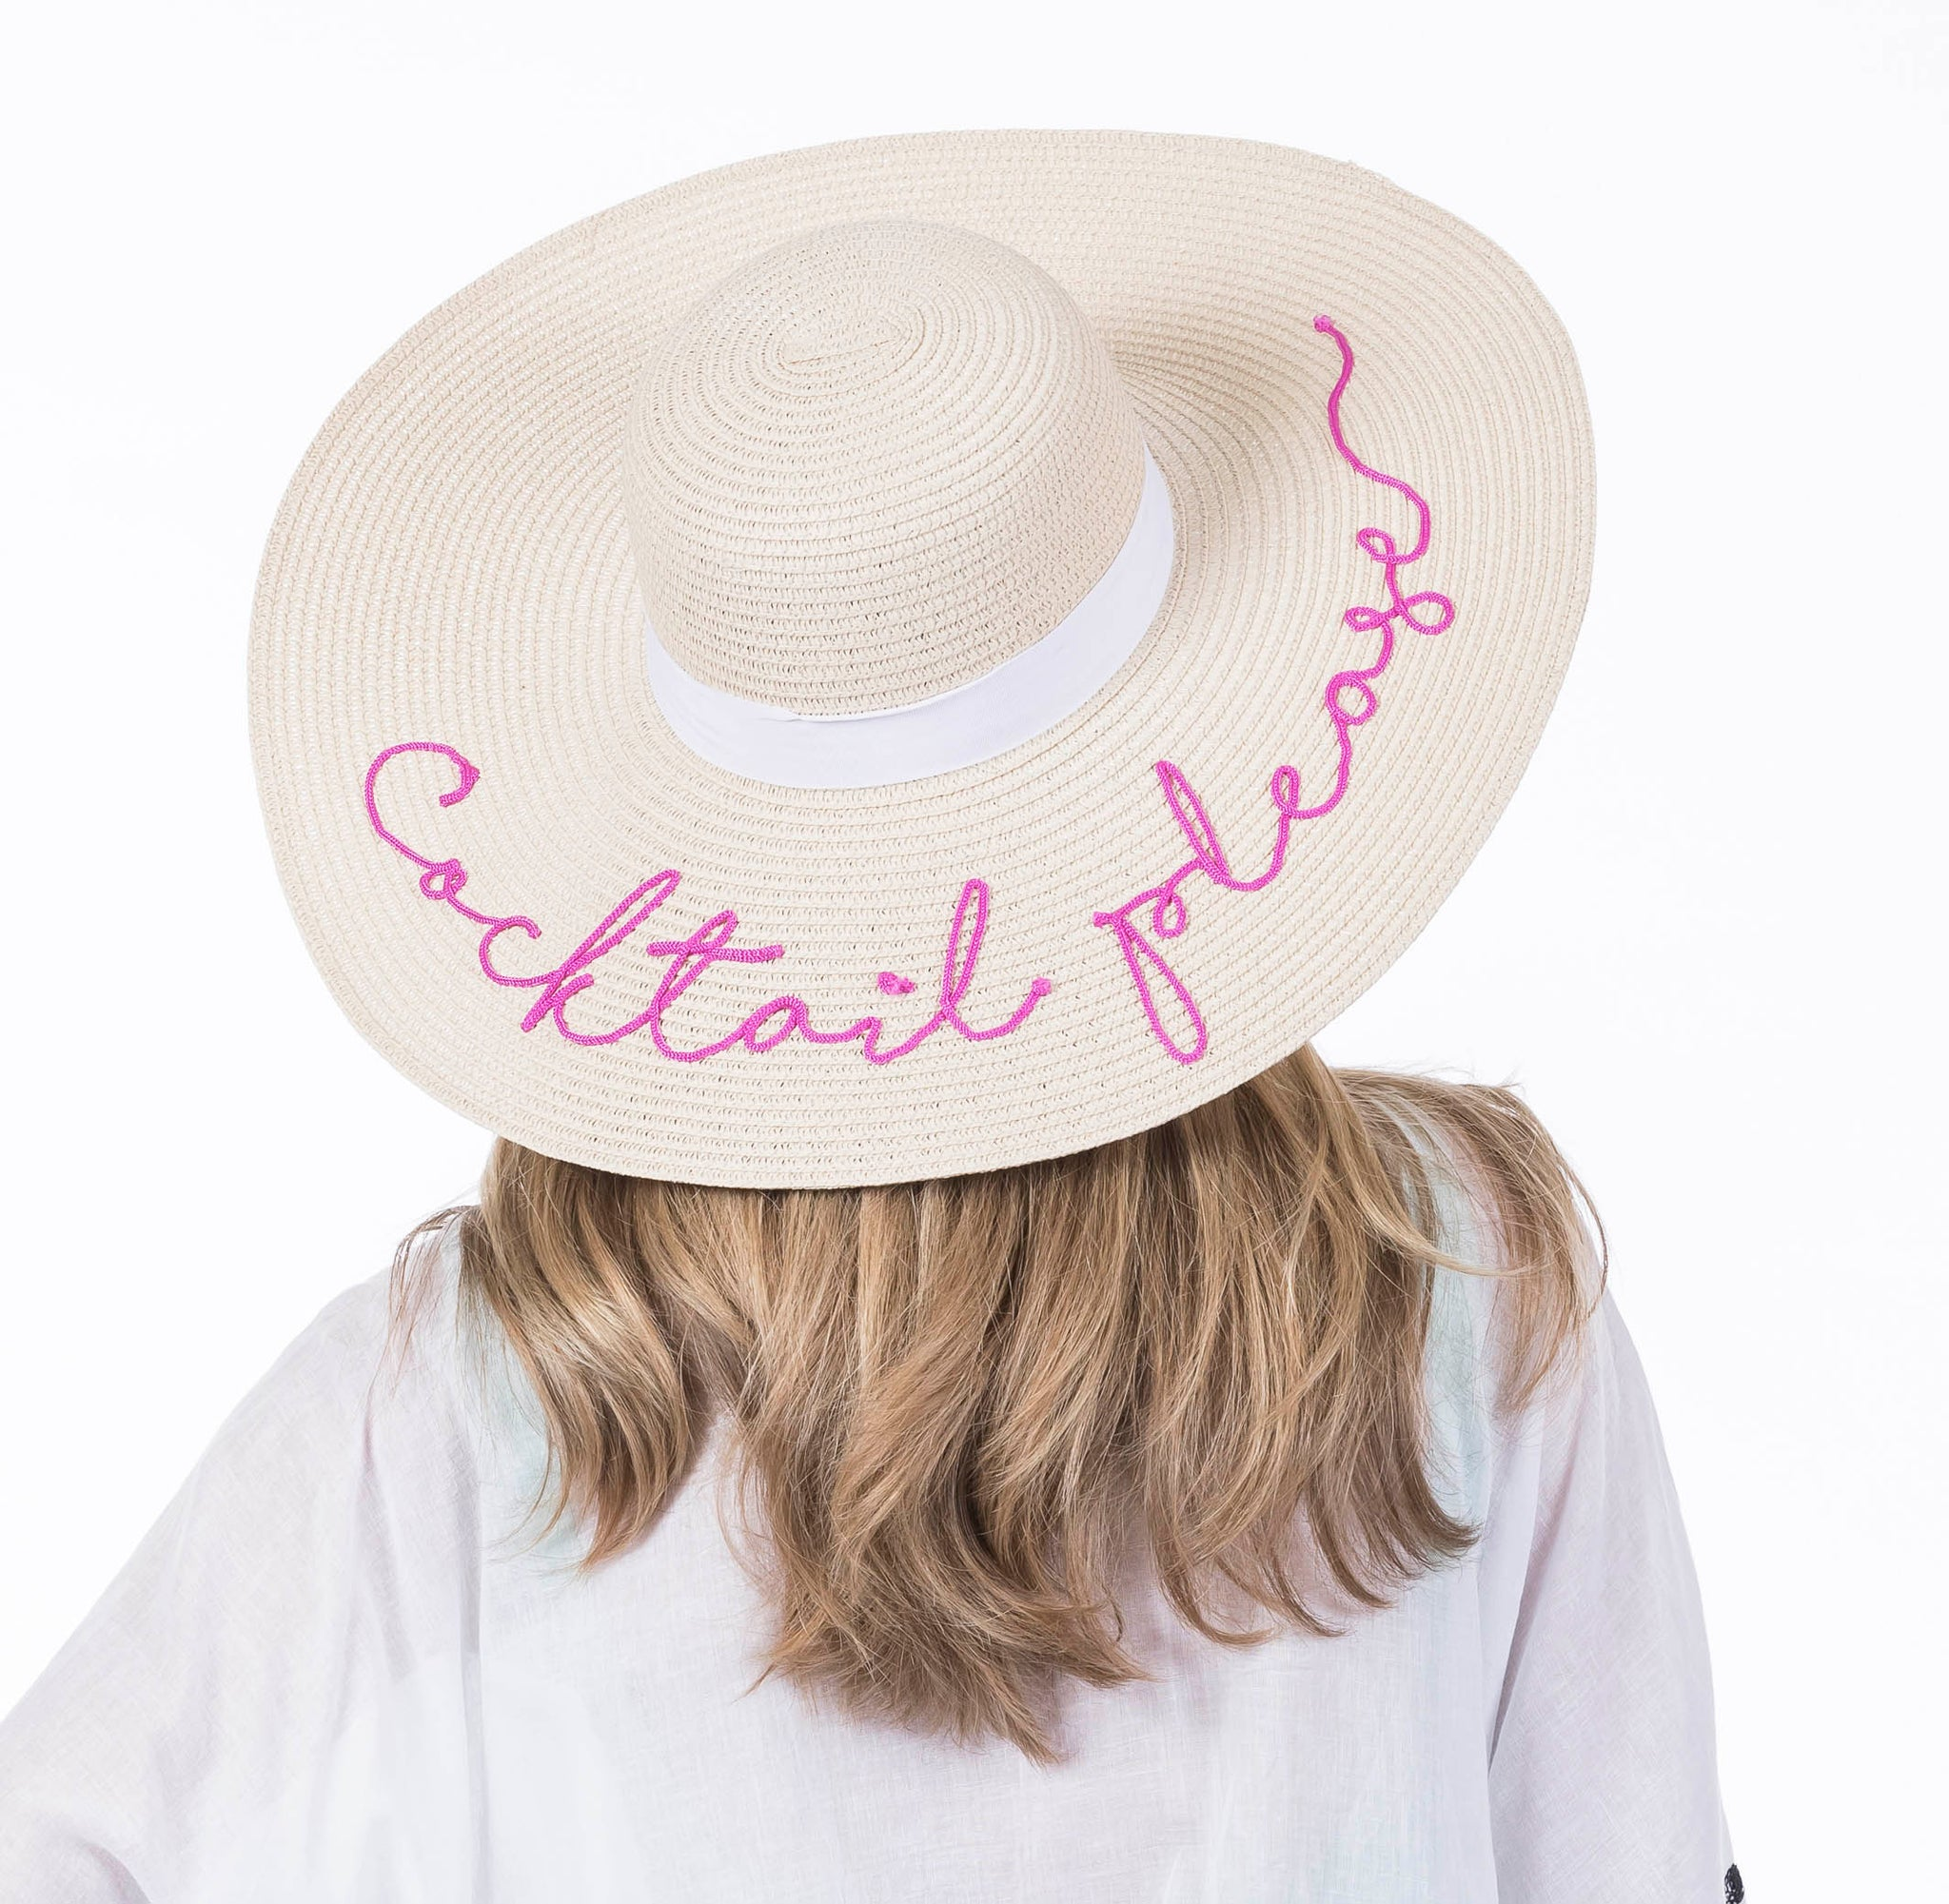 Katydid Cocktail Please Wholesale Sun Hats for Women